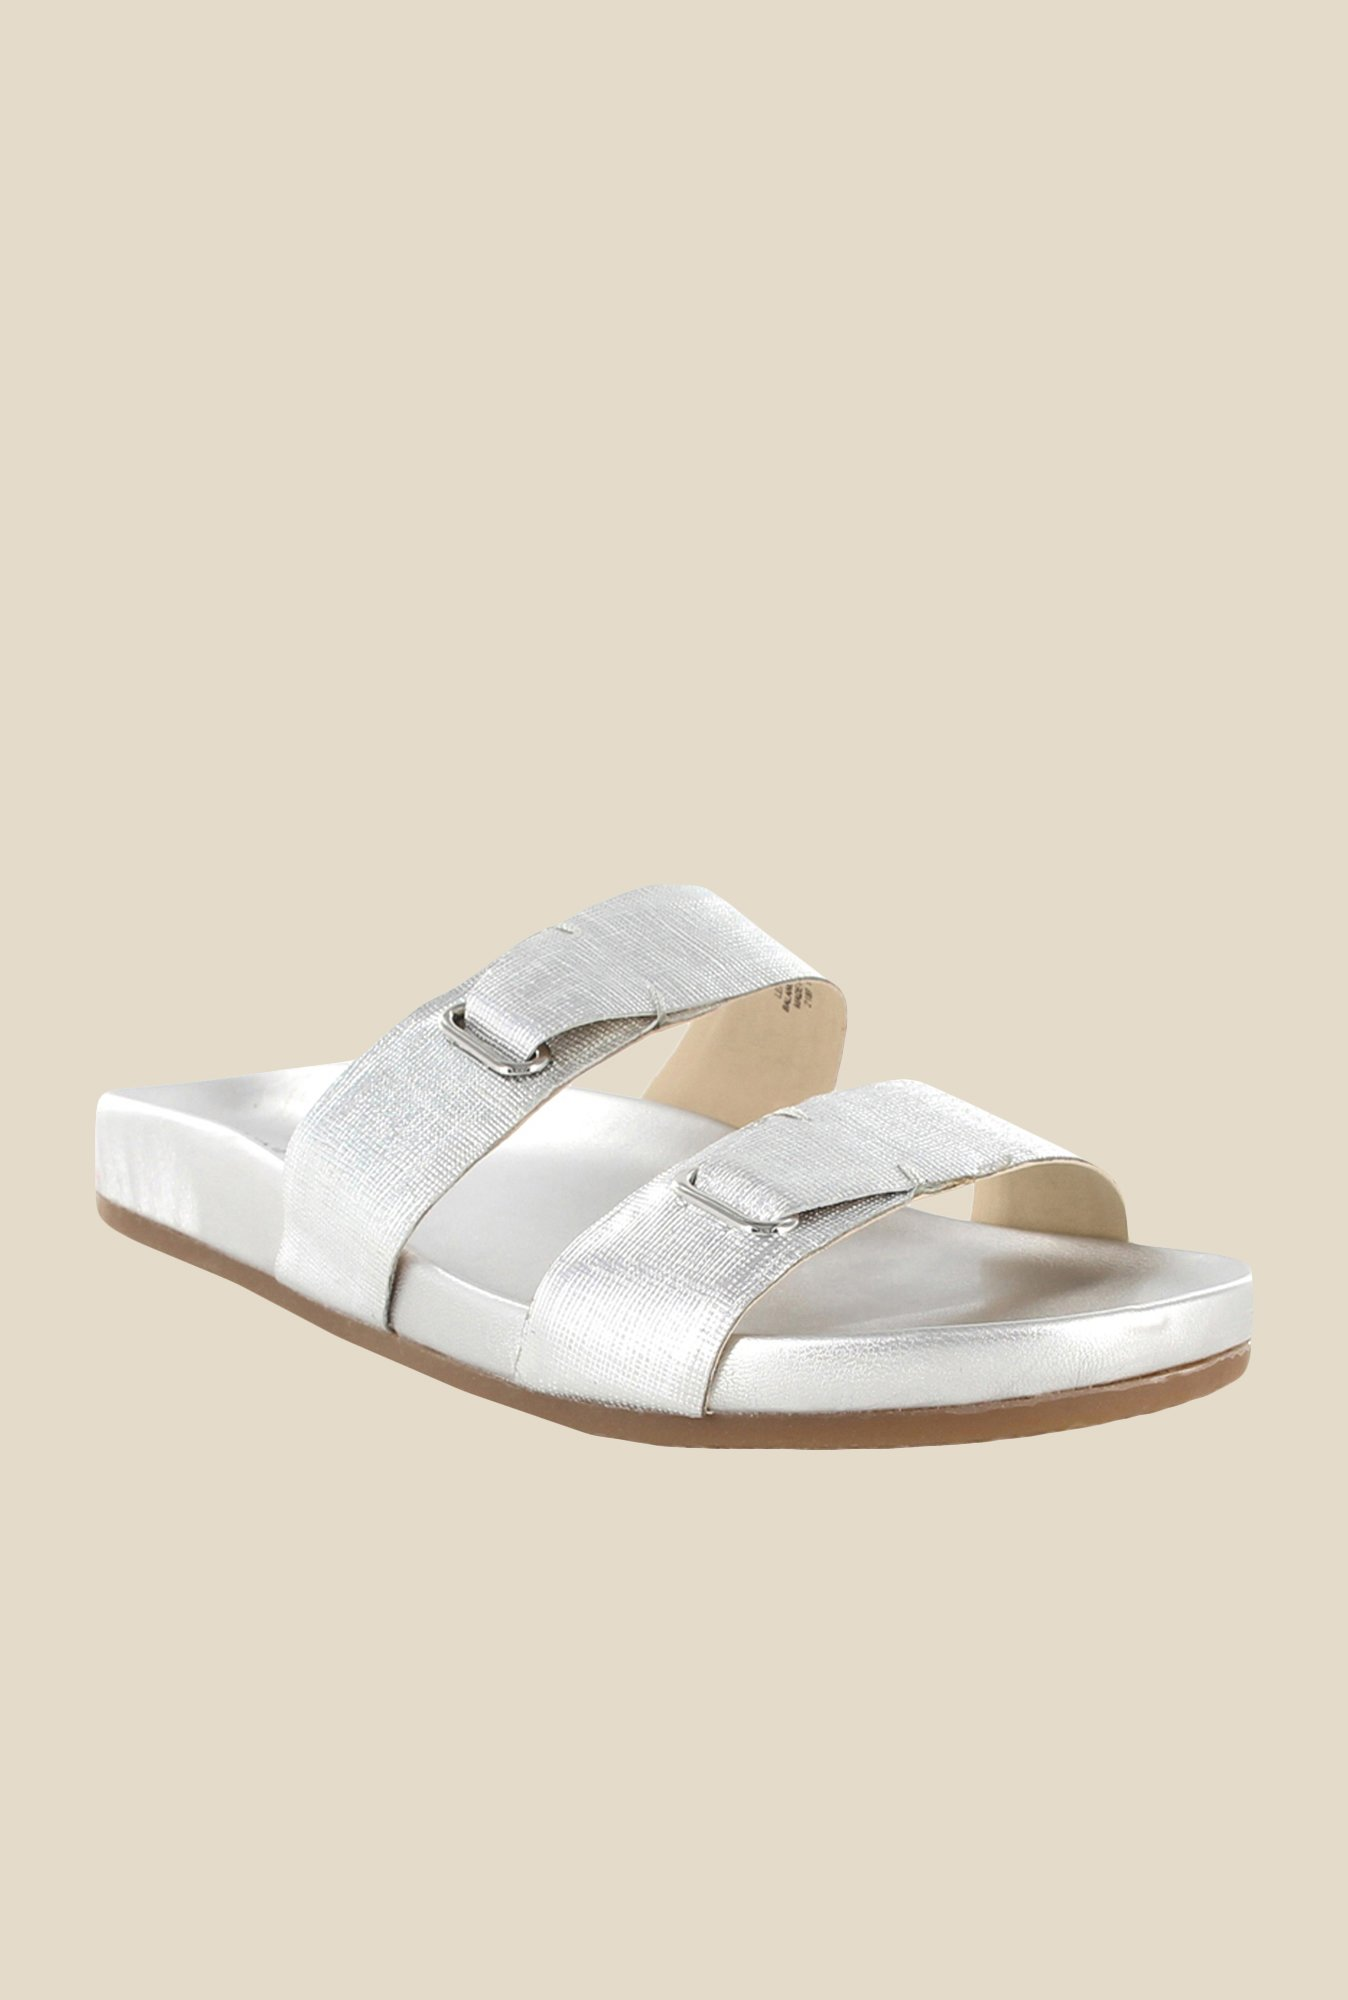 Nine West Silver Casual Sandals